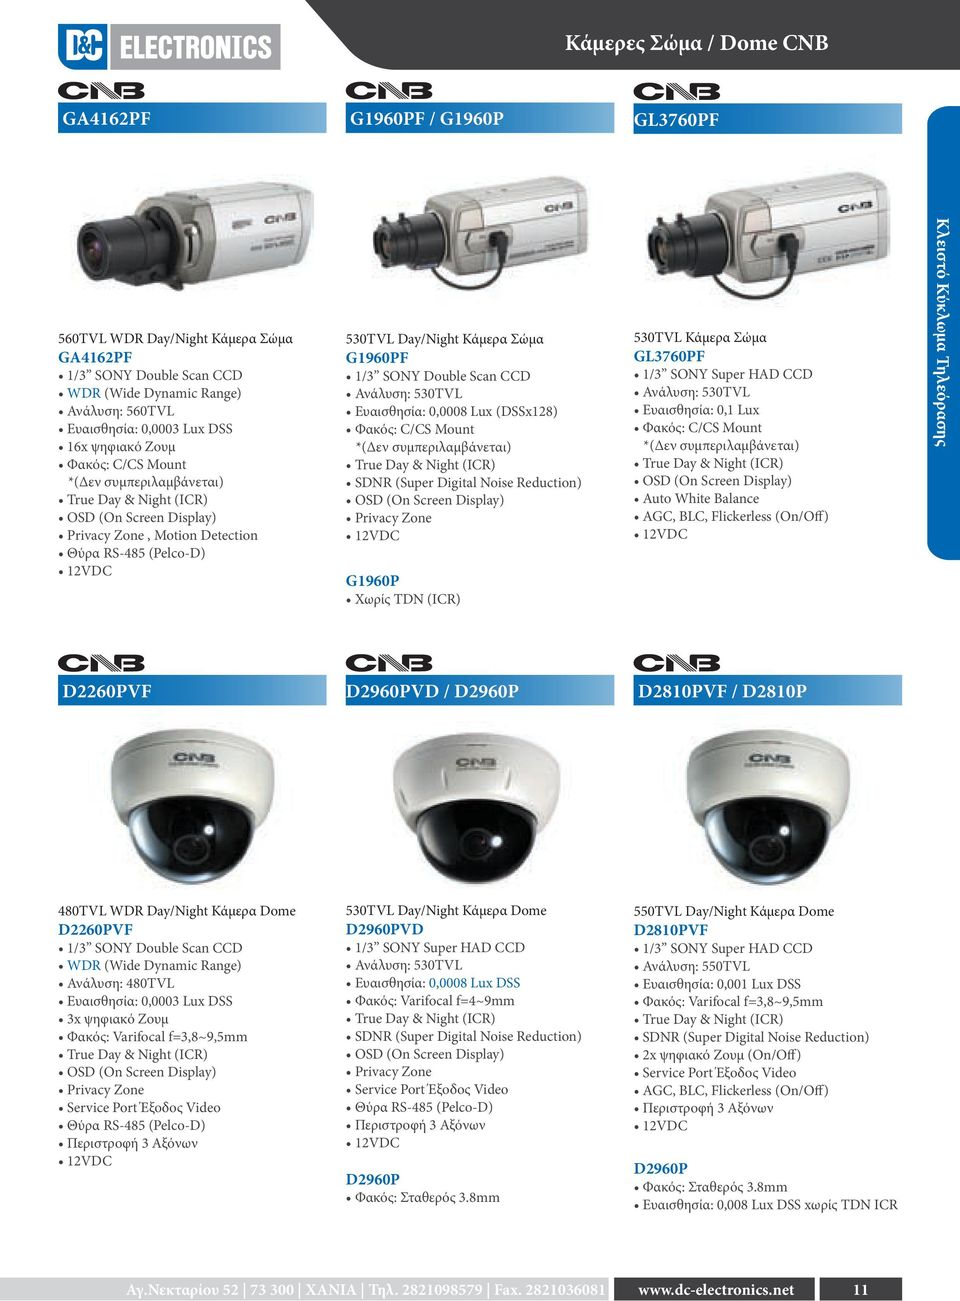 1/3 SONY Double Scan CCD Ανάλυση: 530TVL Ευαισθησία: 0,0008 Lux (DSSx128) Φακός: C/CS Mount *(Δεν συμπεριλαμβάνεται) True Day & Night (ICR) SDNR (Super Digital Noise Reduction) OSD (On Screen